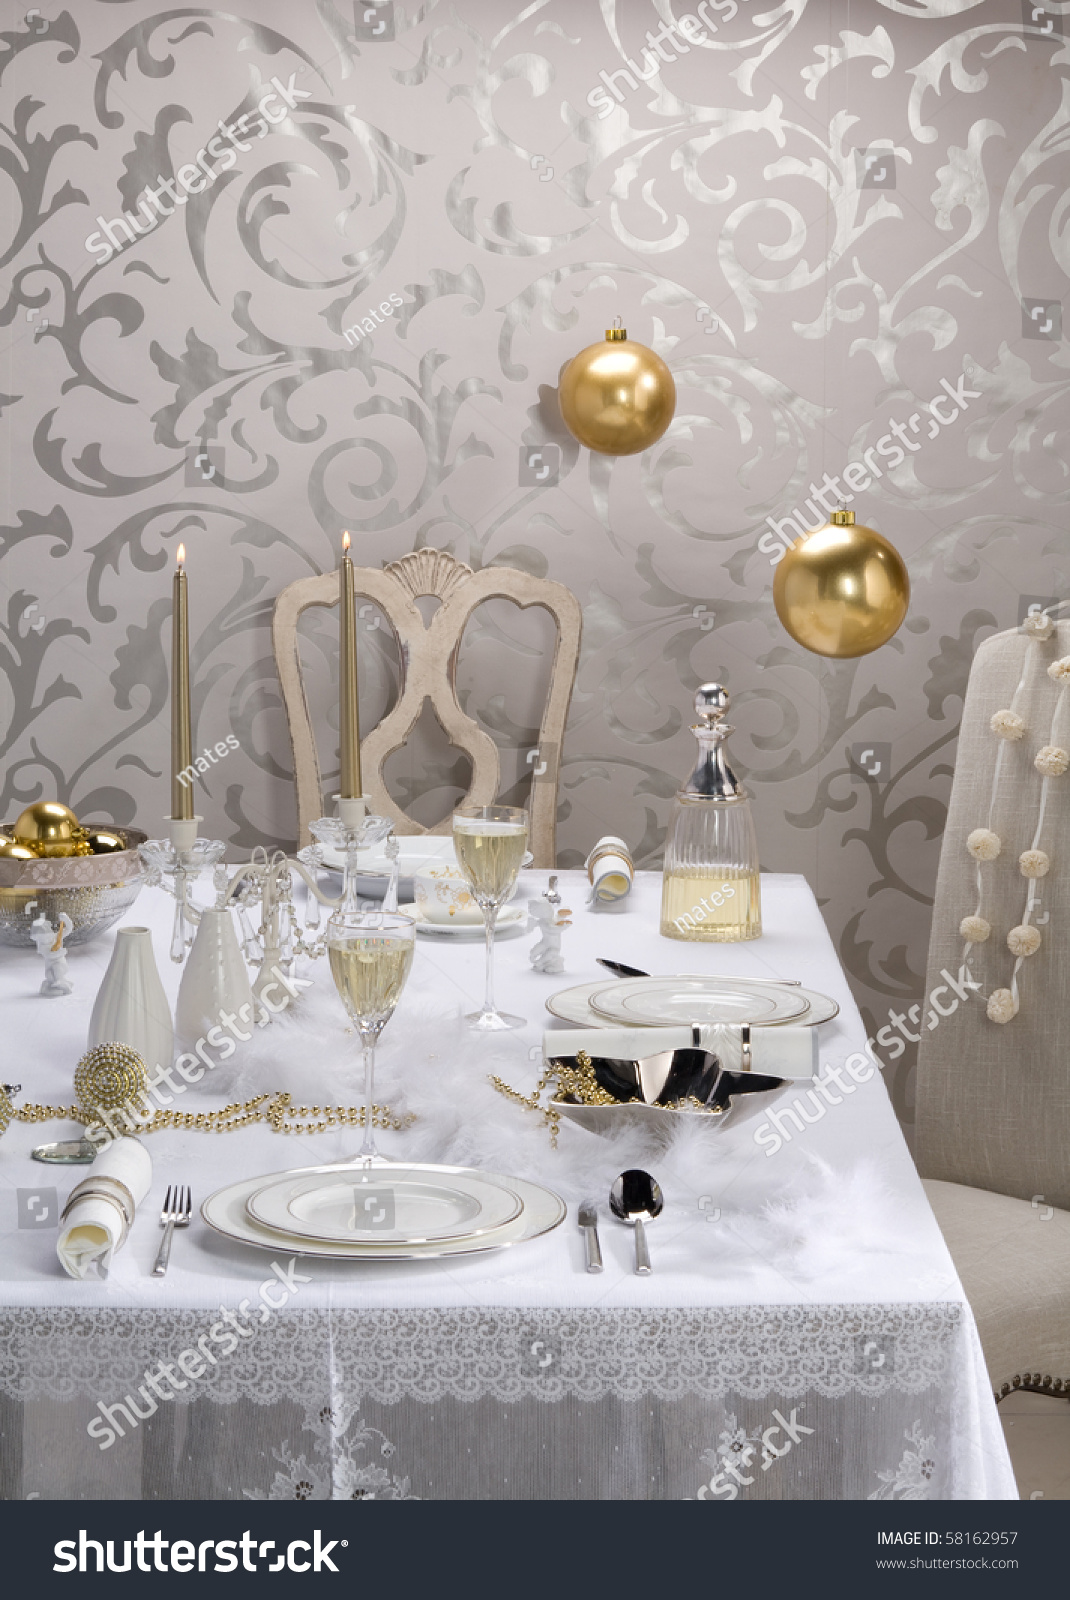 white christmas table setting & White Christmas Table Setting Stock Photo 58162957 - Shutterstock